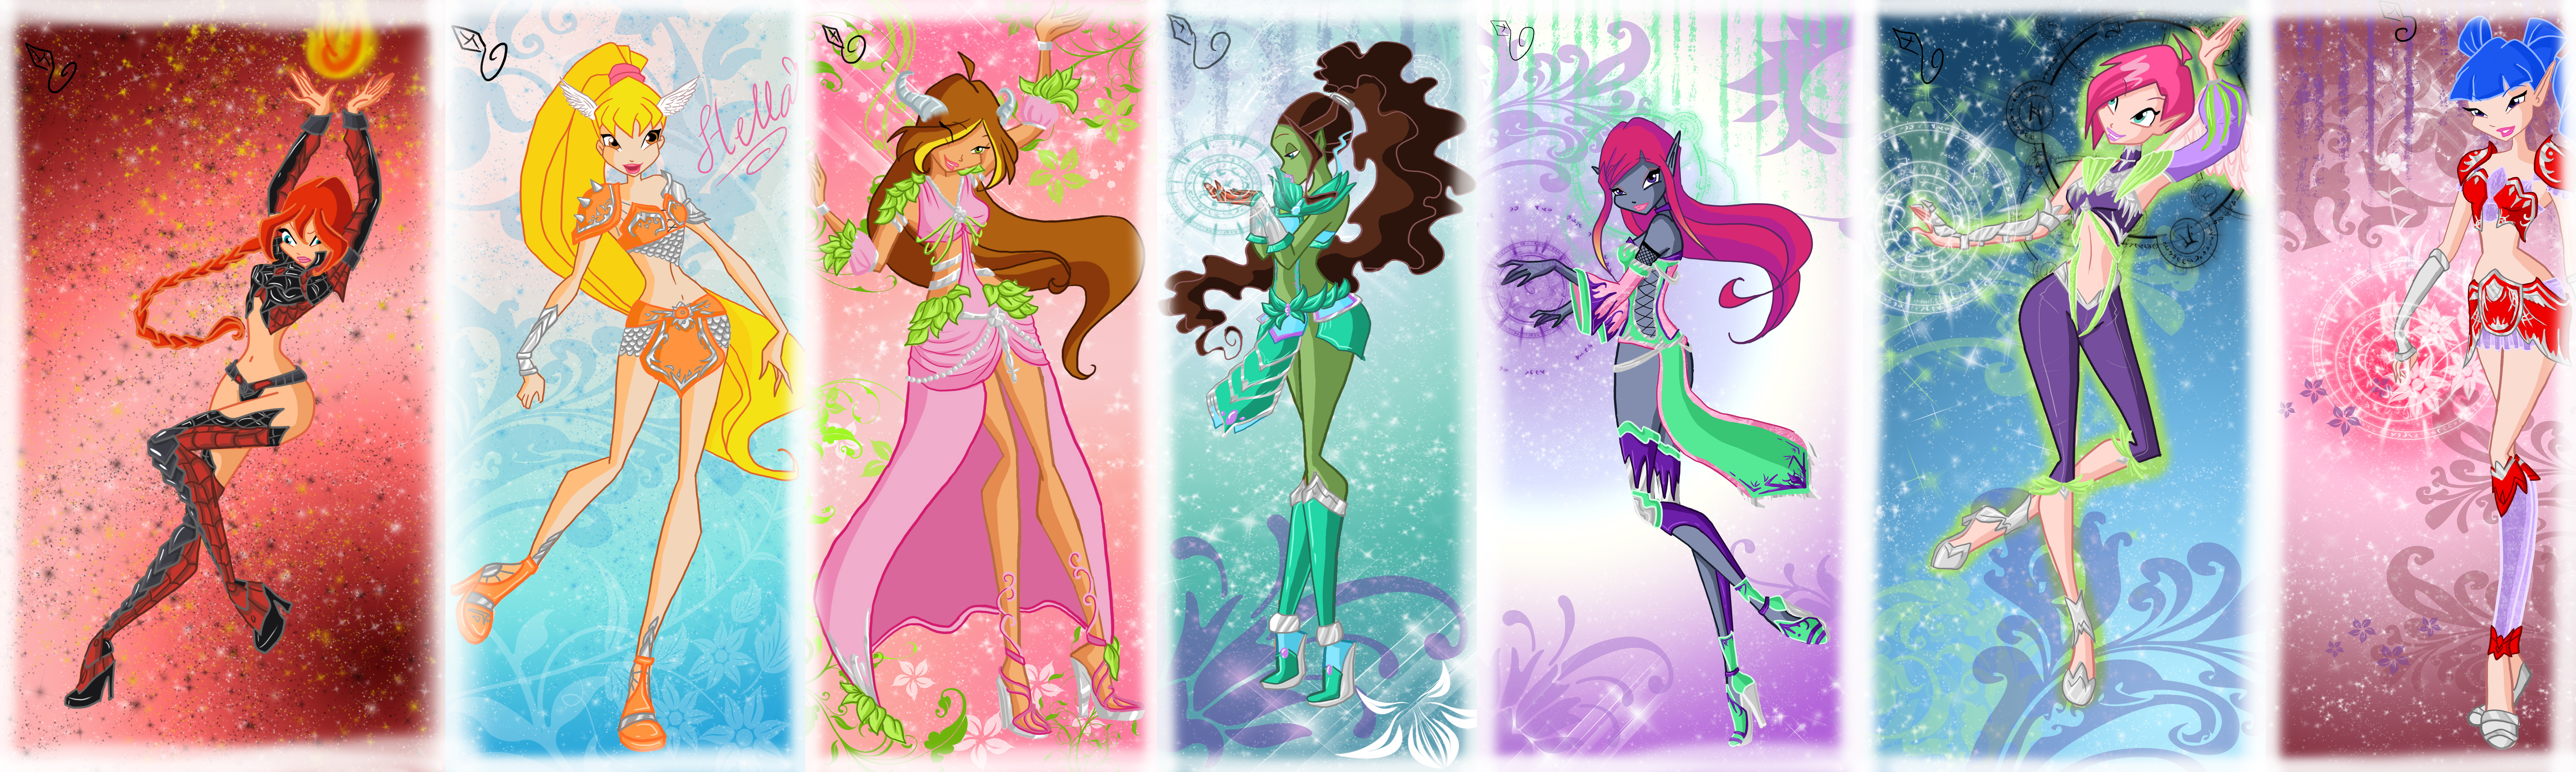 Hinh anh winx for pinterest